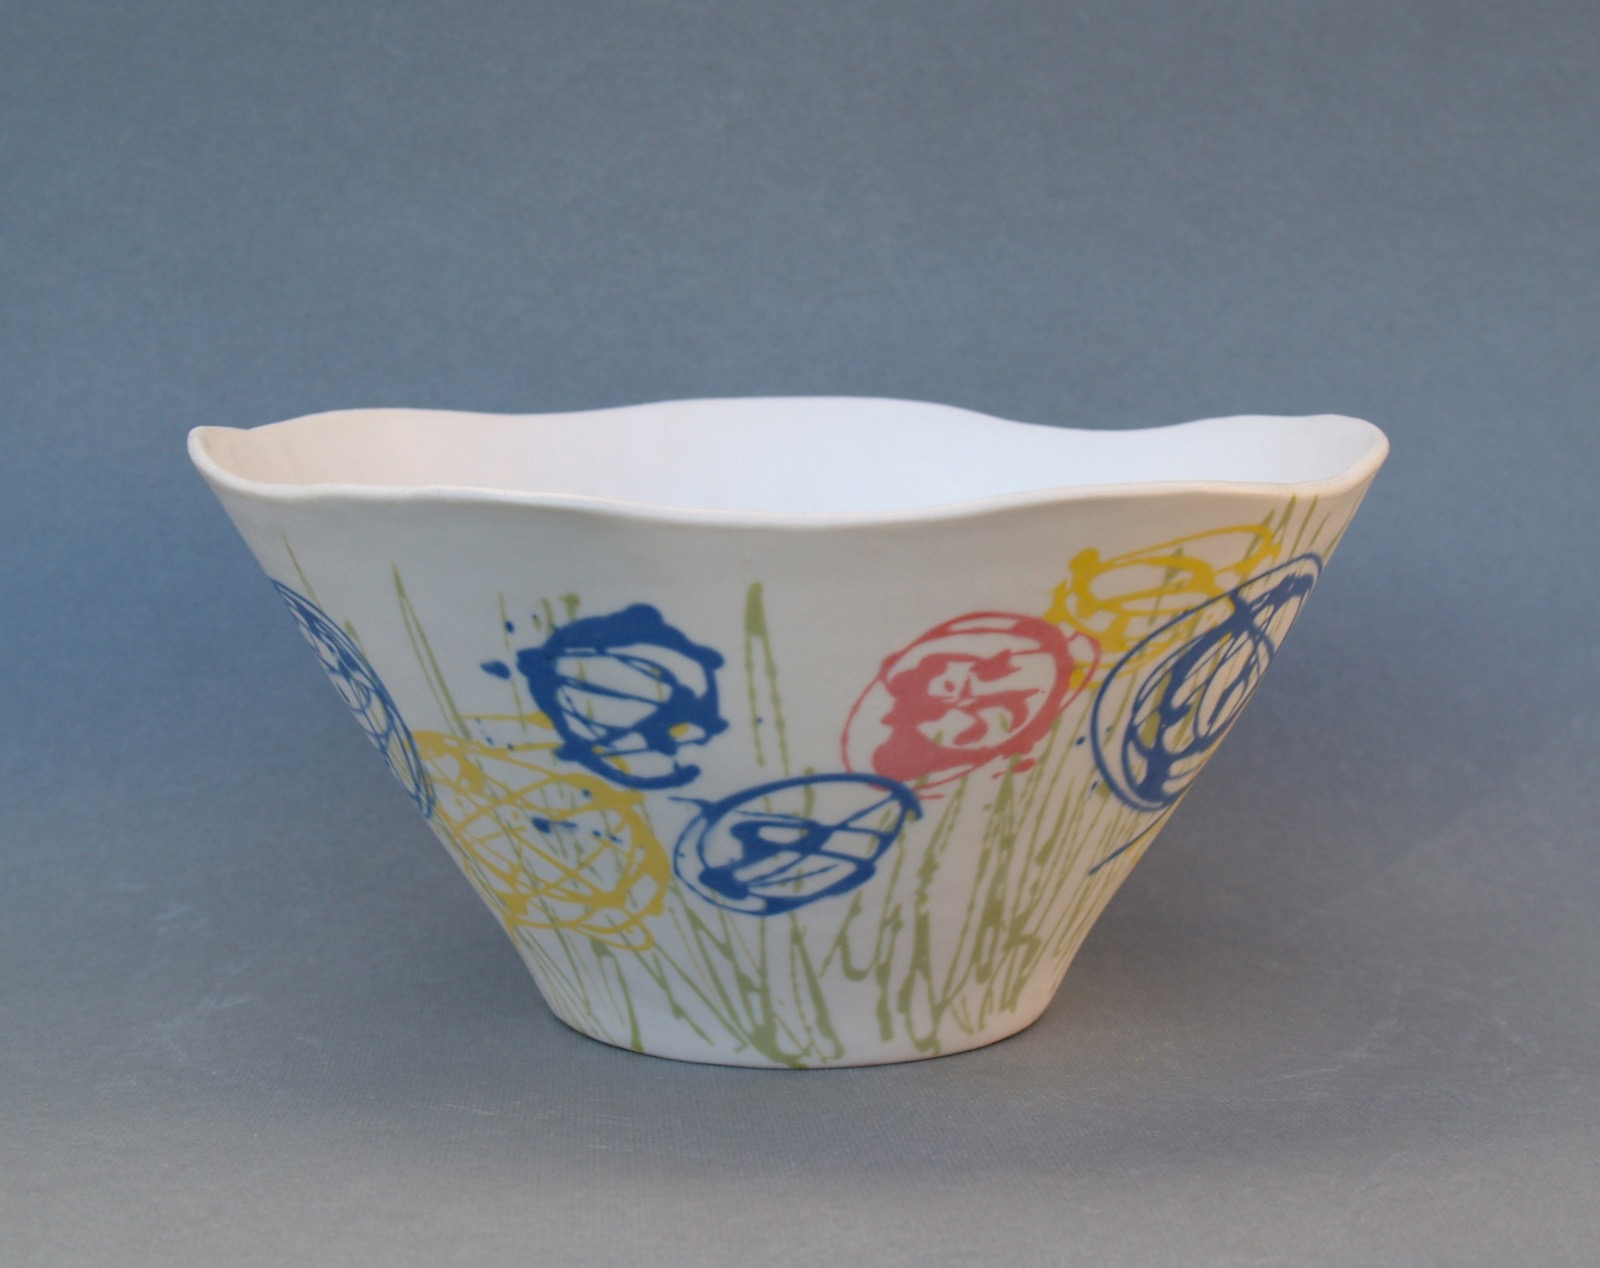 Small porcelain bowl with abstract flowers